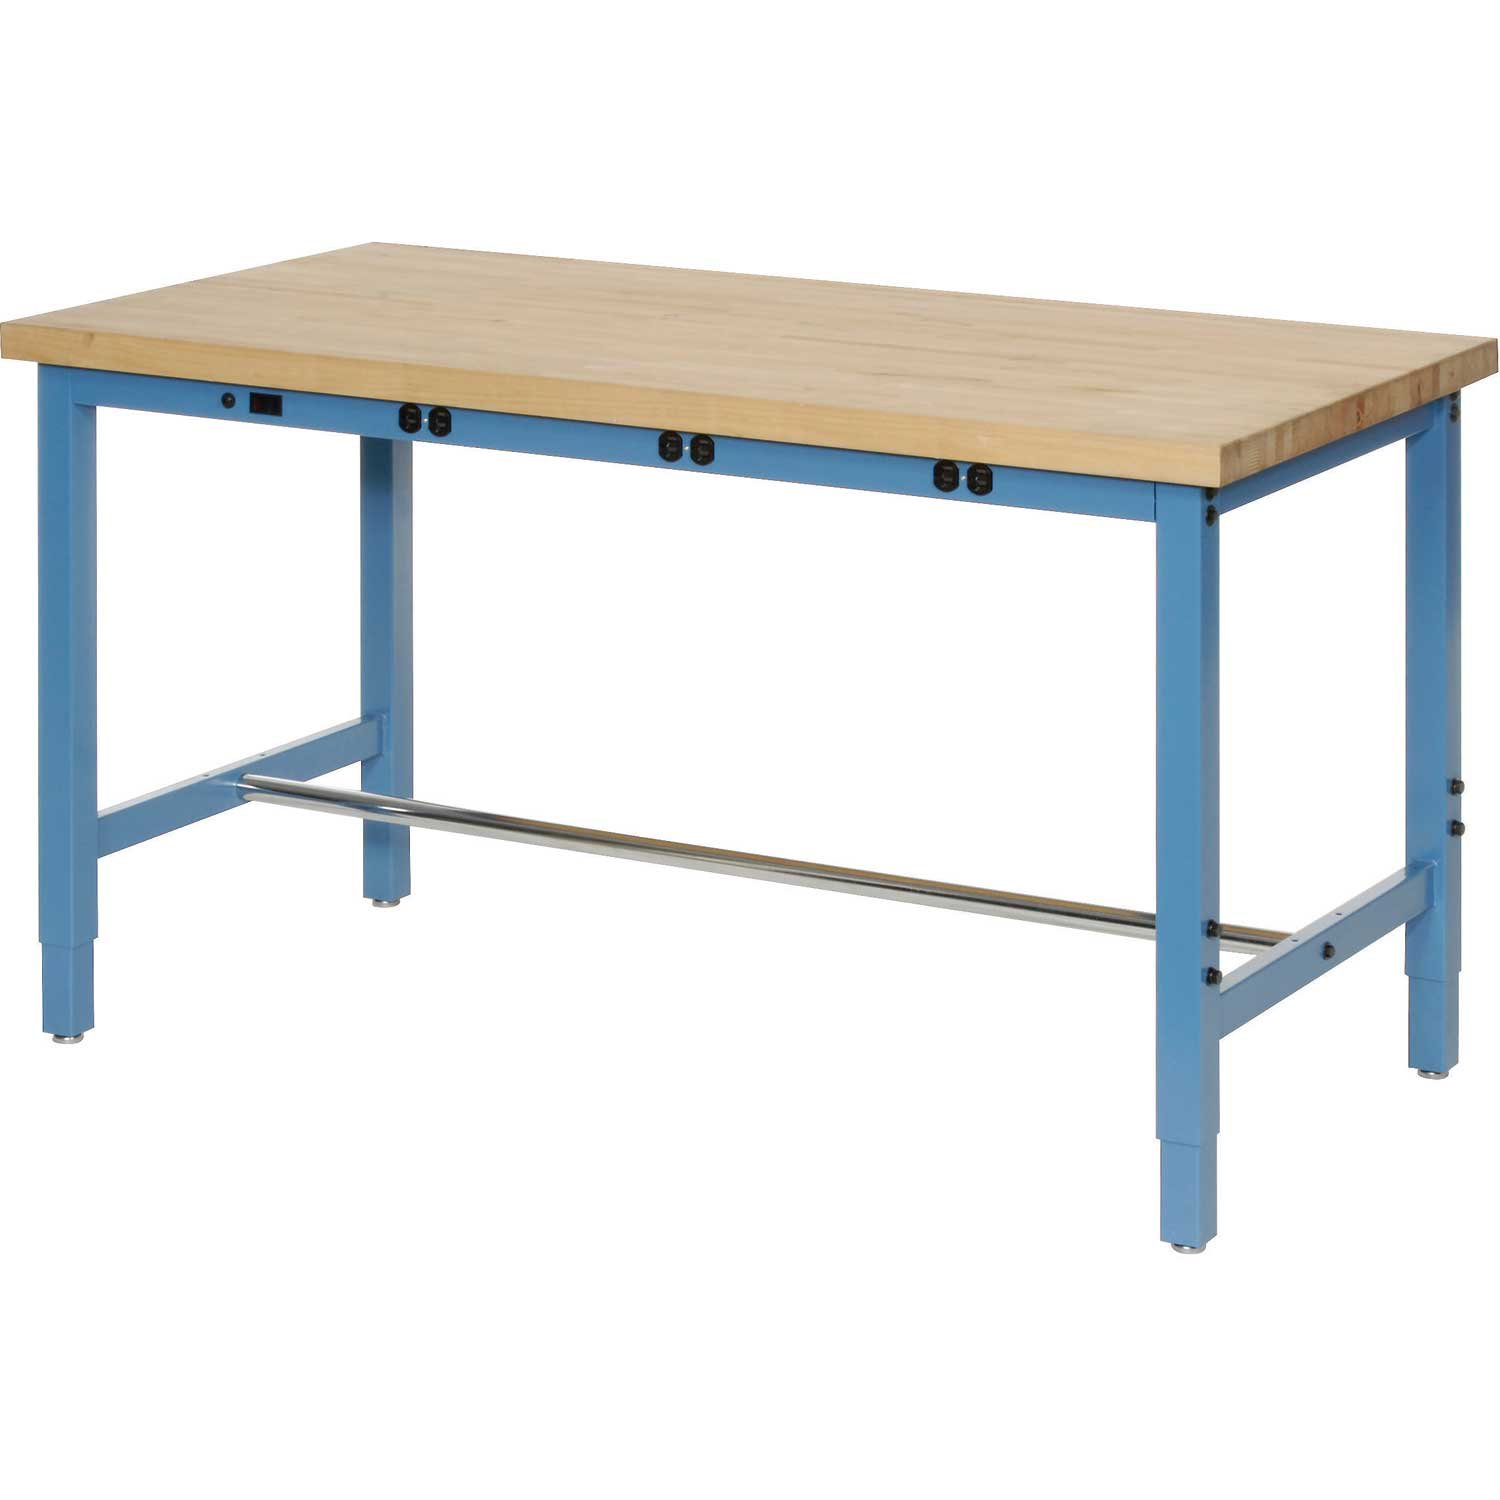 Production Workbench with Power Apron - Birch Butcher Block Square Edge - Blue, 48''W x 30''D